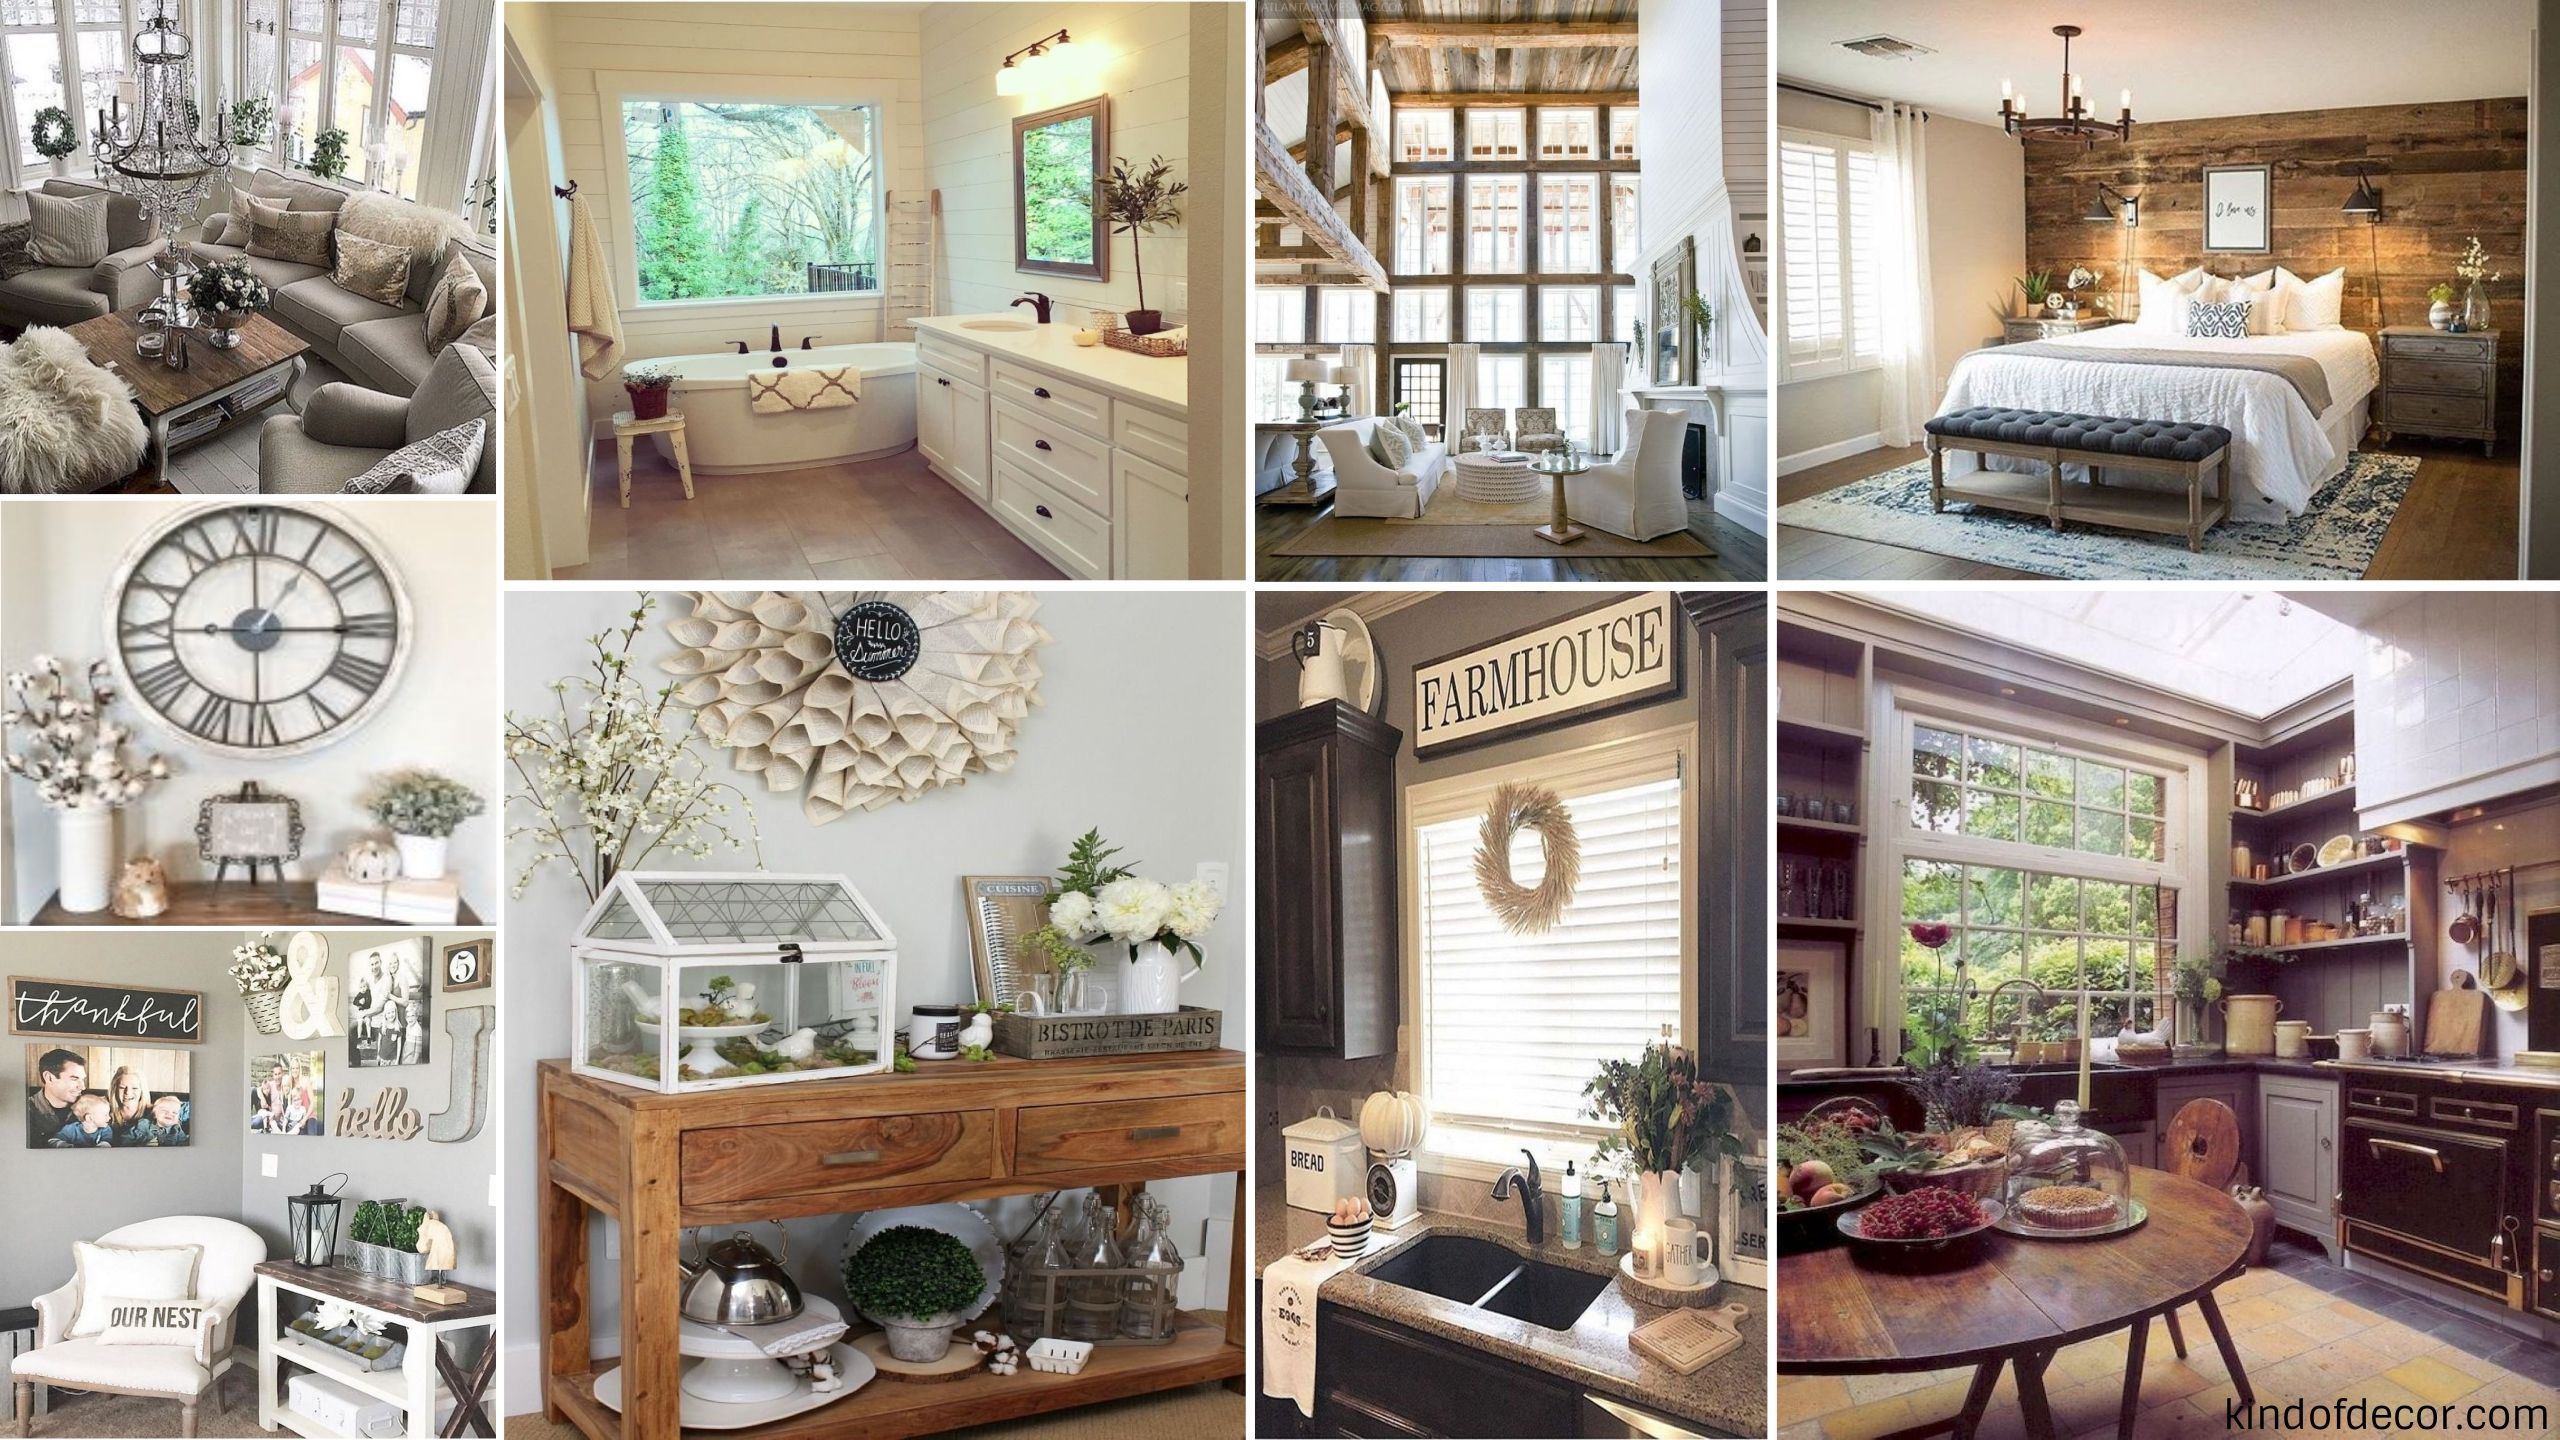 Gorgeous 39 Beautiful Rustic Farmhouse Home Decoration Ideas Httpkindofdecorcom